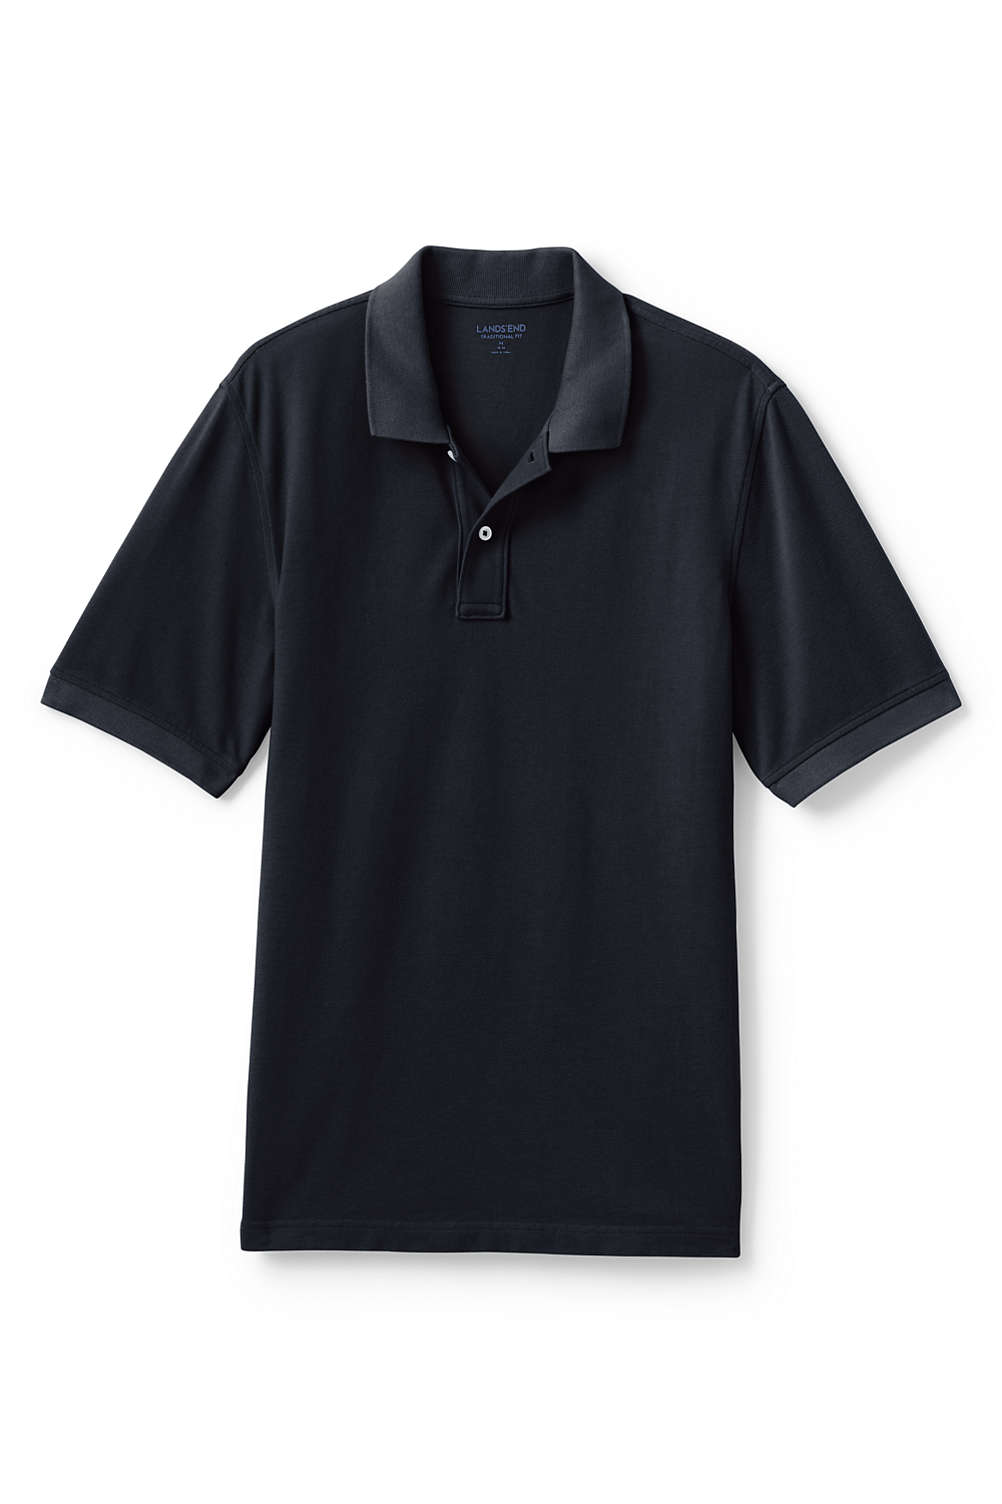 Mens Mesh Short Sleeve Polo Shirt From Lands End